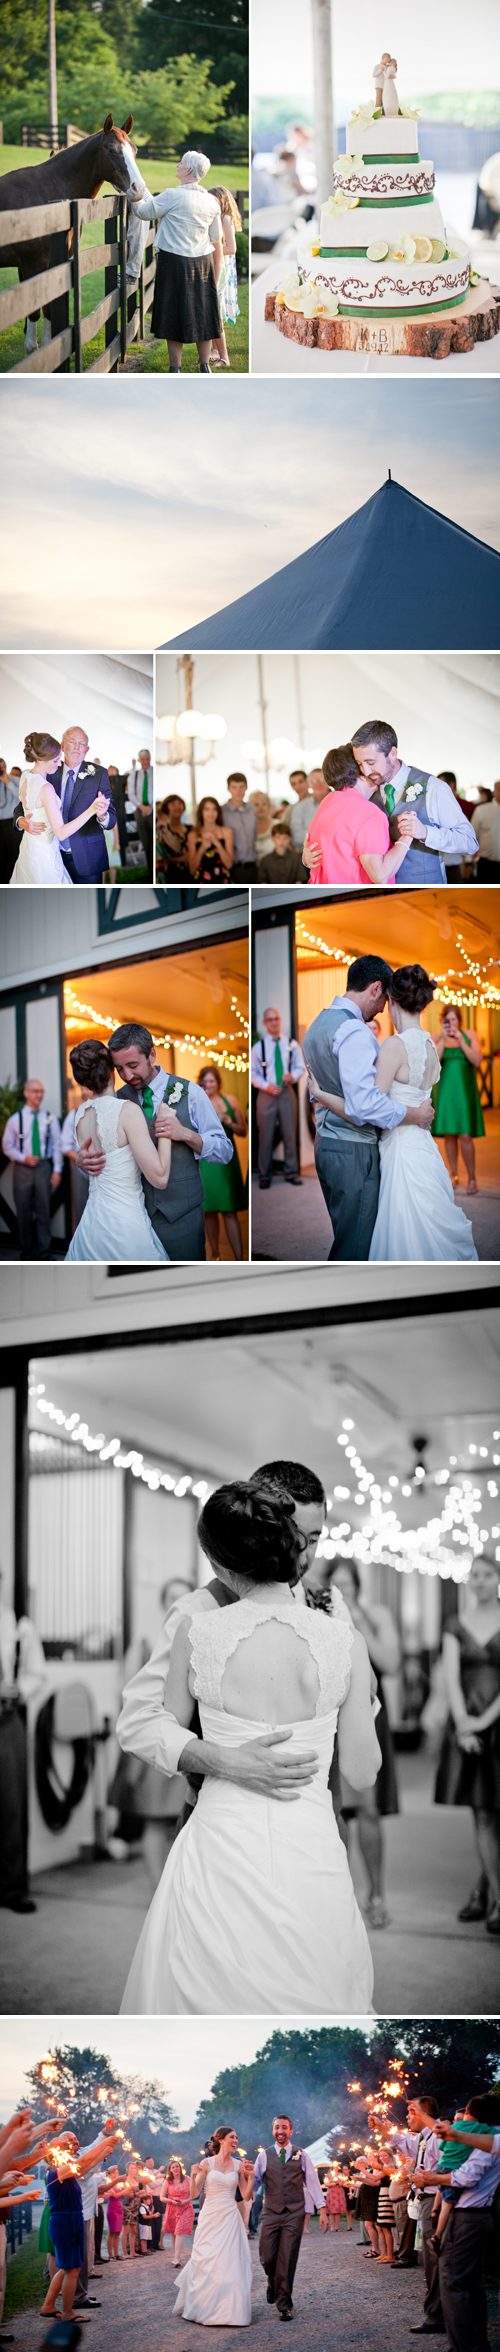 Lily Glass Photography Southern Weddings 3